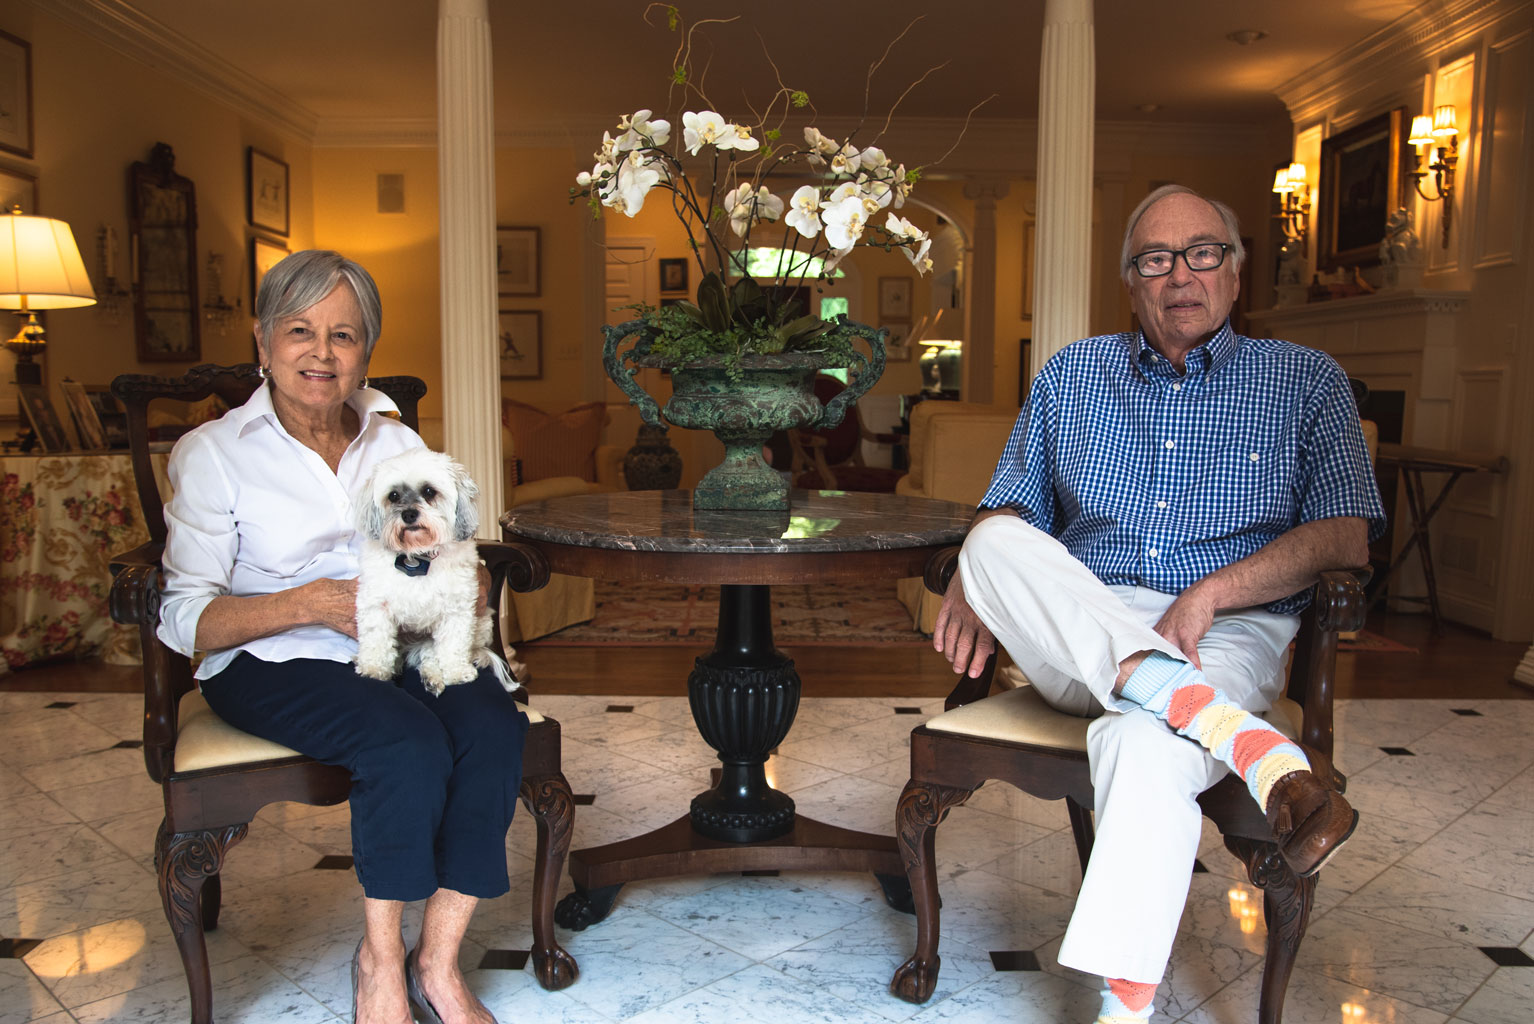 Gayle and her husband rest in chairs in their living room with their dog on Gayle's lap.